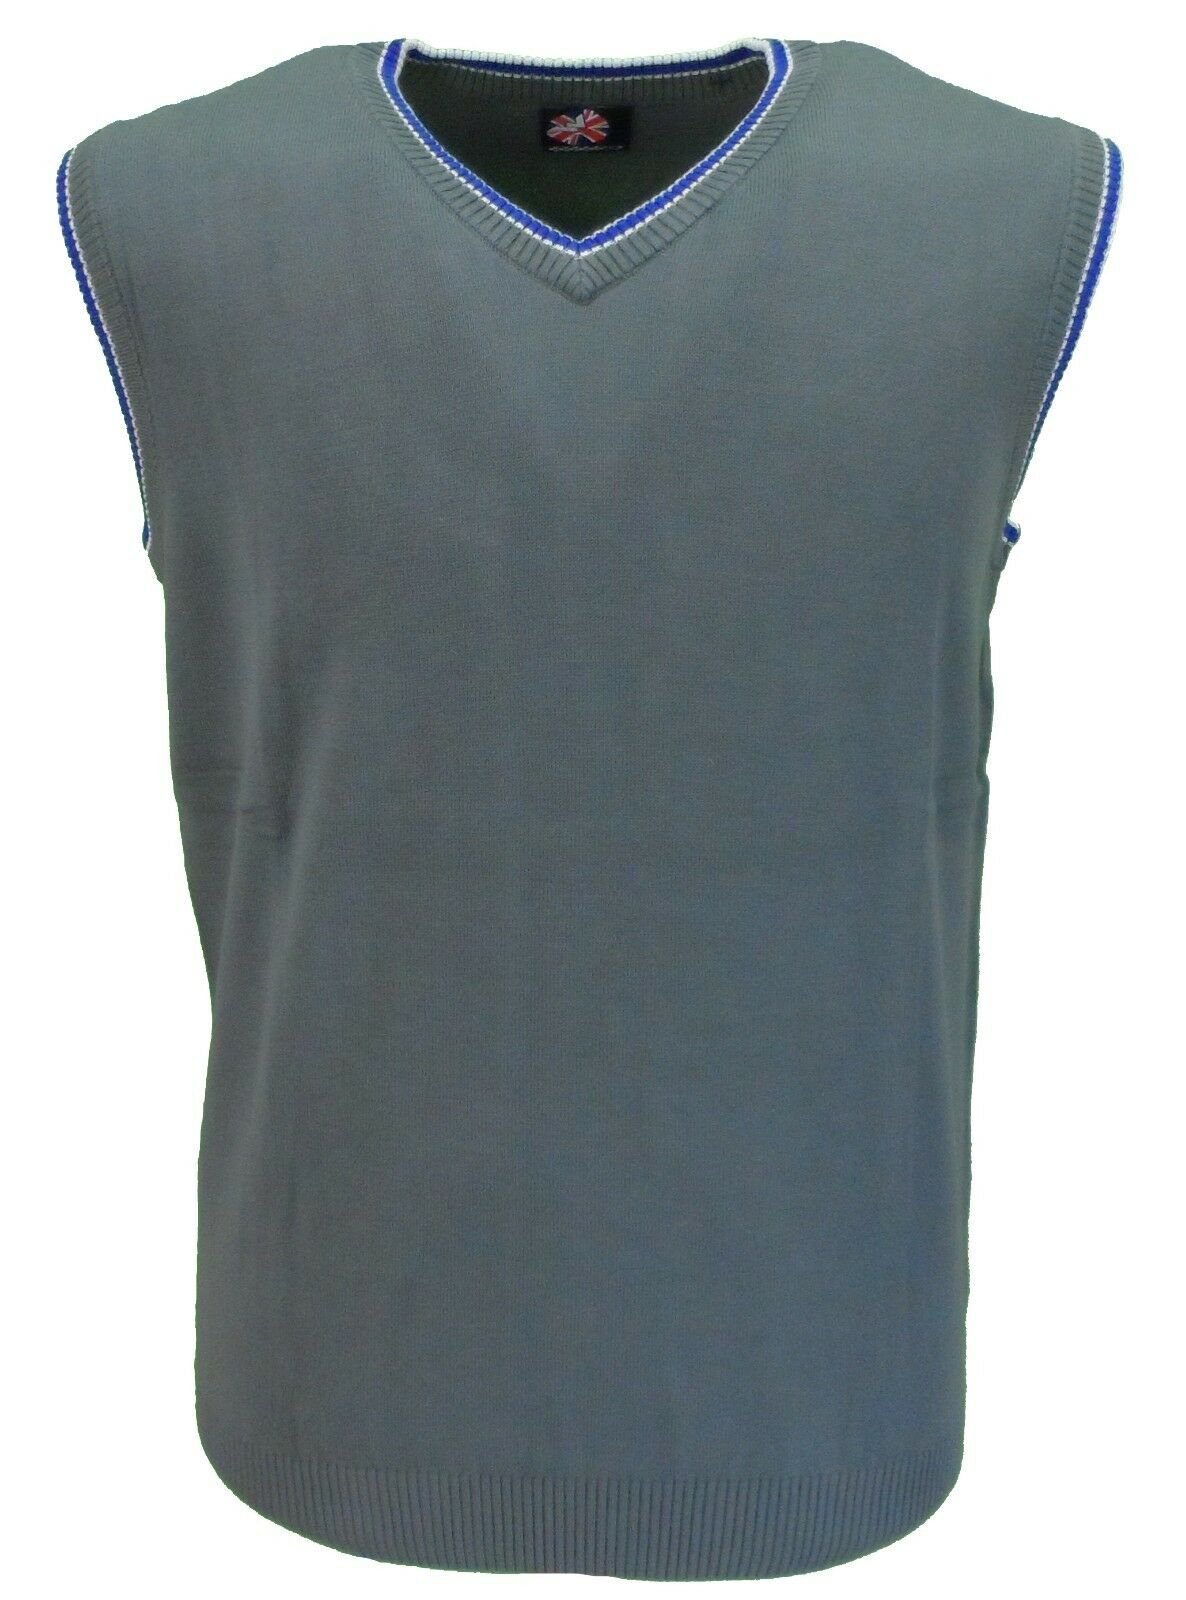 Warrior Grey Retro Tank Top